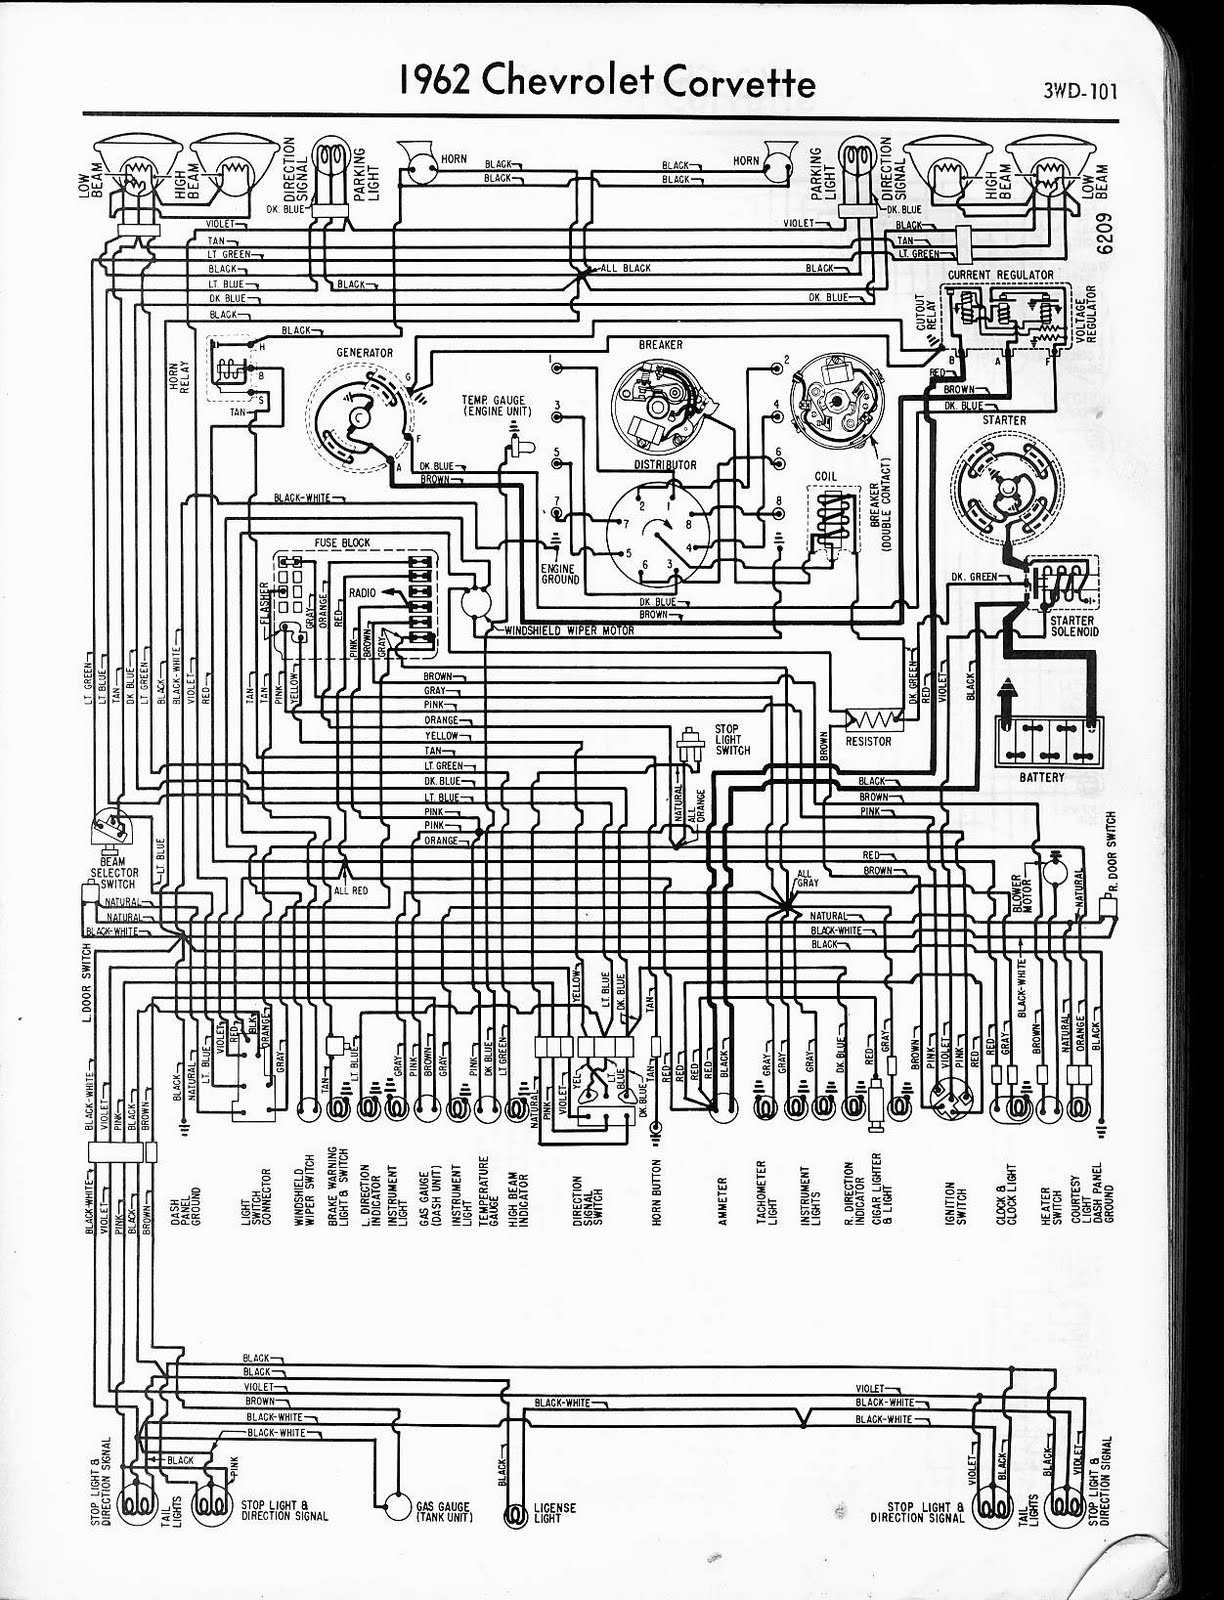 86 Firebird Fuse Box Diagram Wiring Library Pontiac Free Auto 1962 Chevrolet Corvette 2000 1988